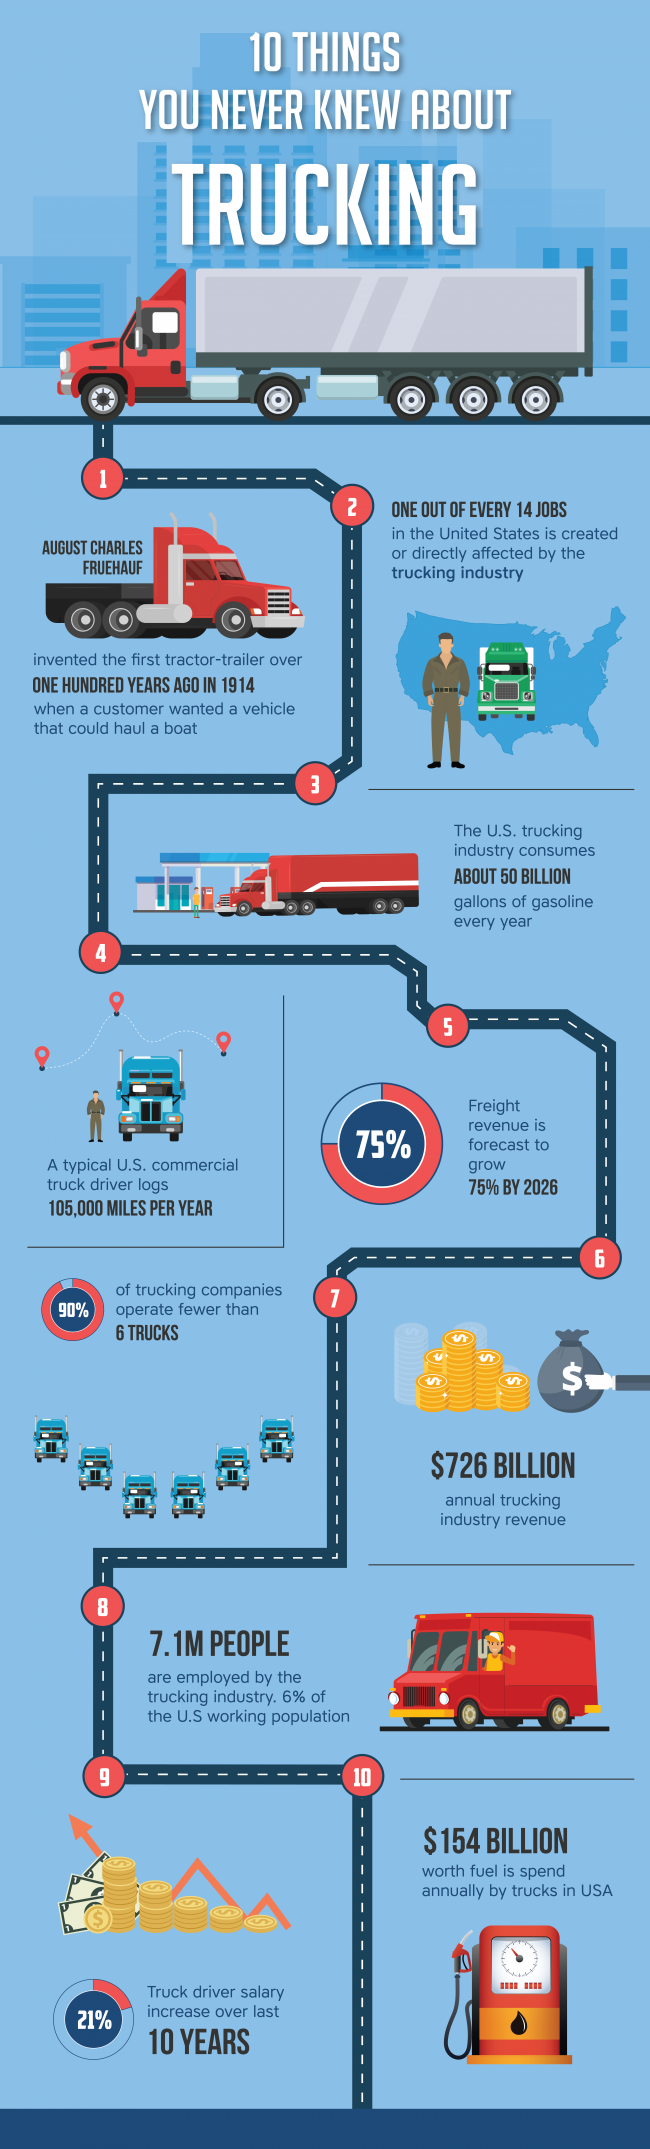 10 Things You Never Knew About Trucking